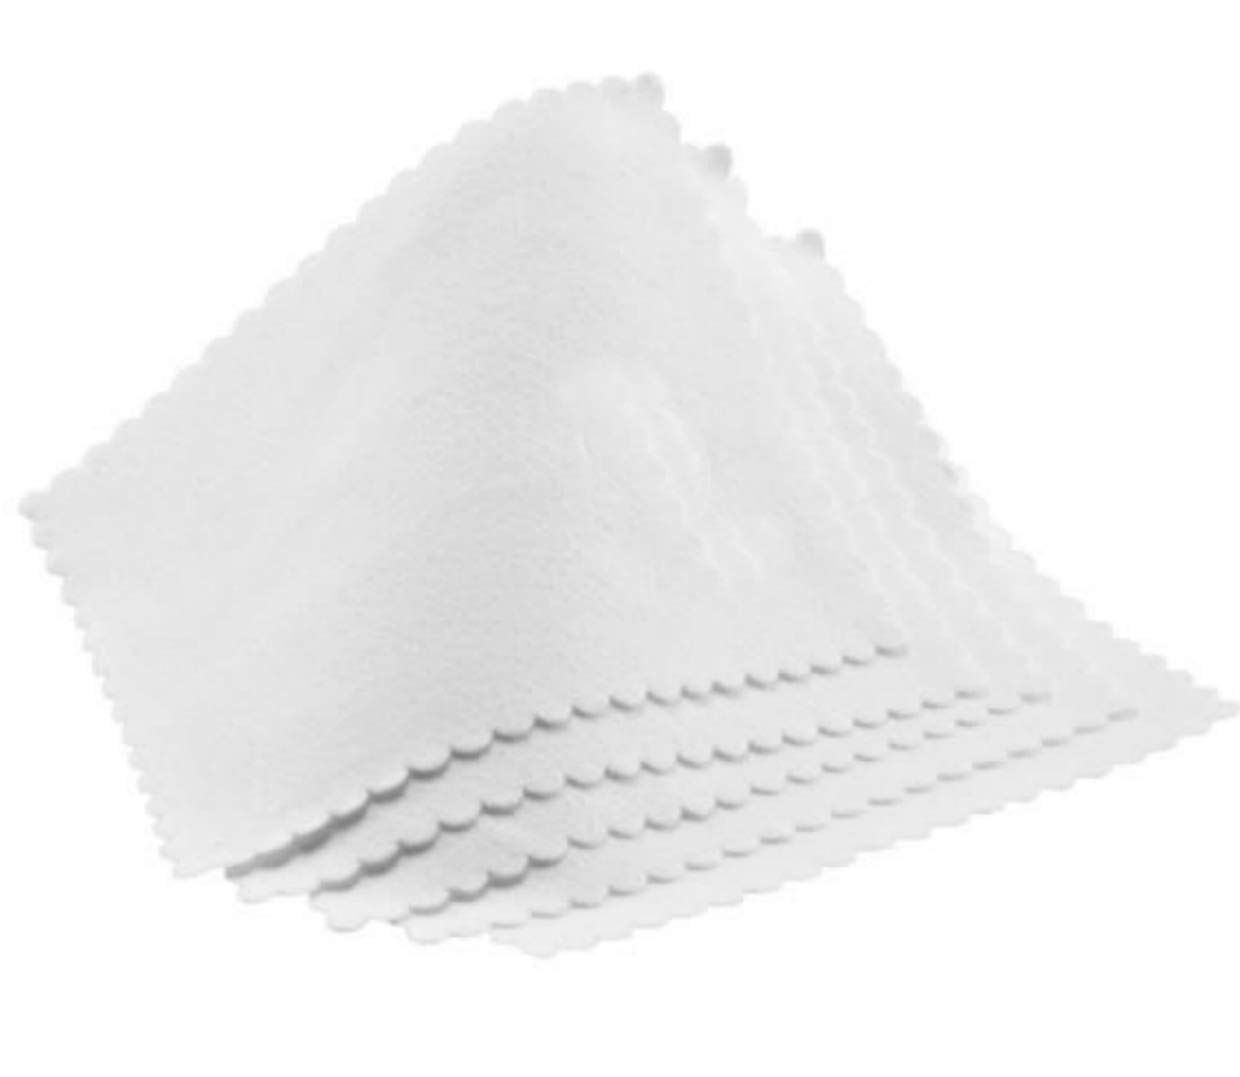 White Suede Premium Optical 6x 6 Microfiber Cleaning Cloths - for Screens, Lenses, Glasses, Apple iPads and More (50 Pack) Unknown